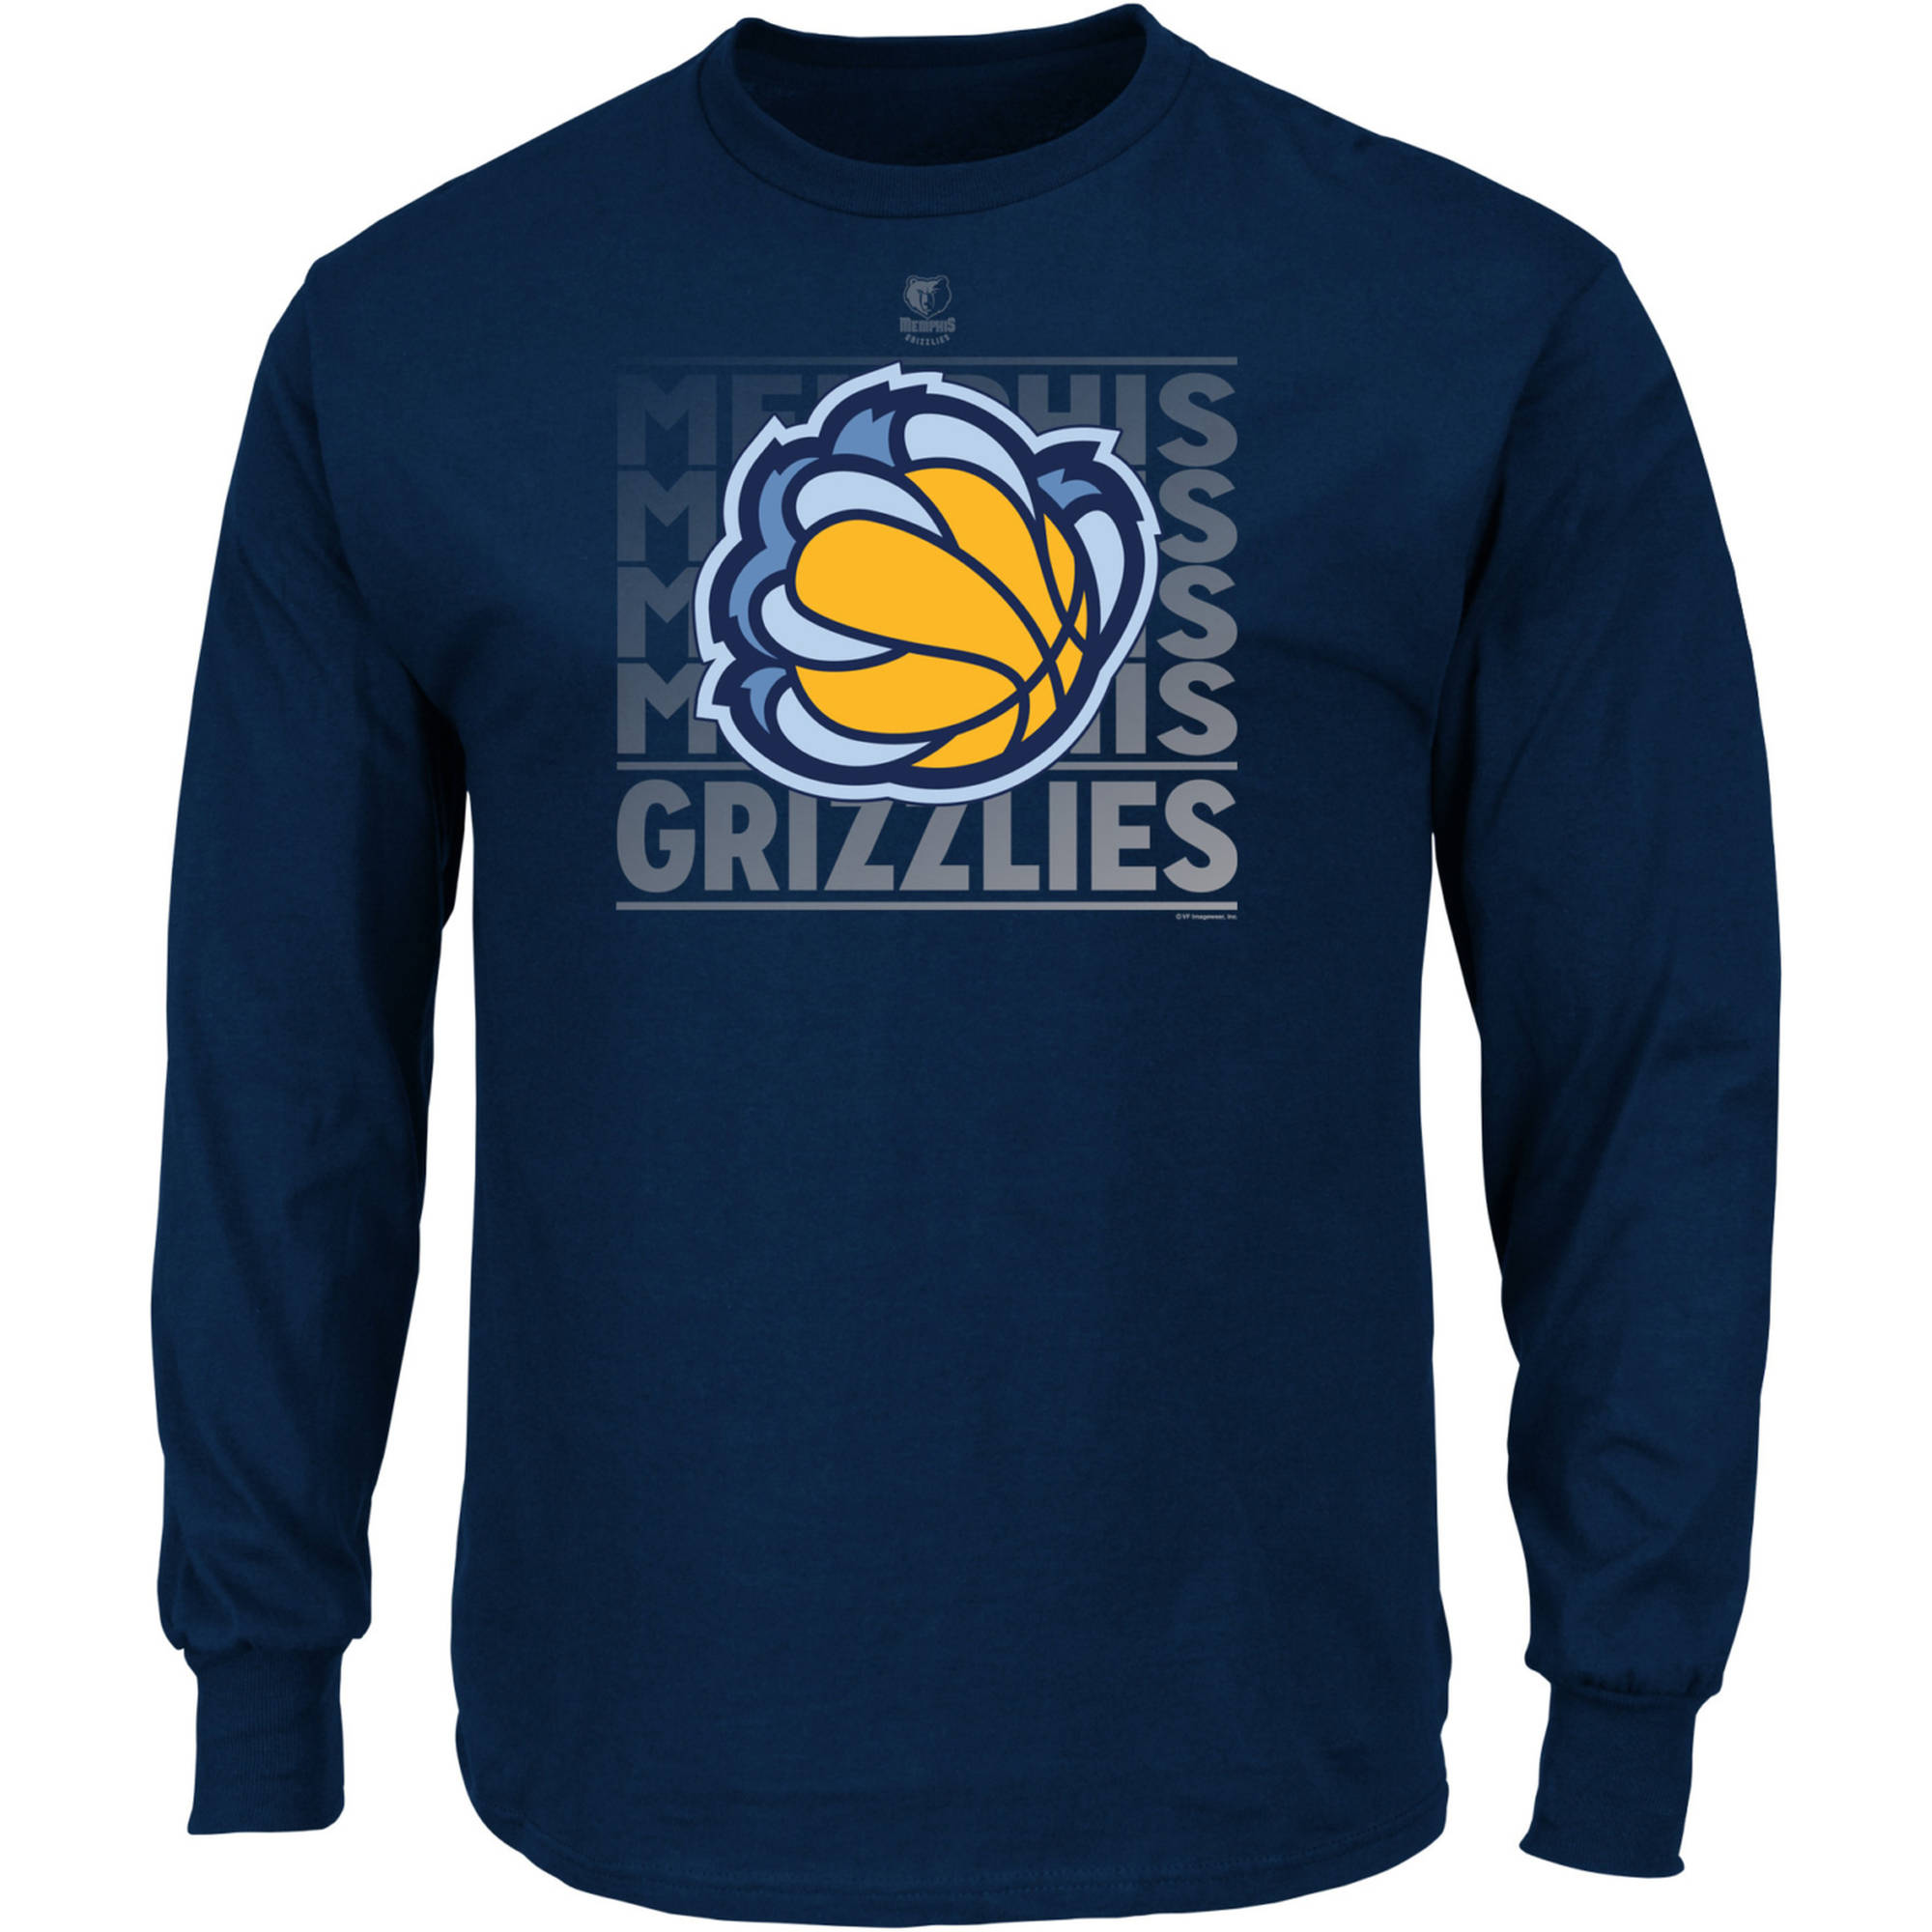 NBA Memphis Grizzlies Men's Long Sleeve Crew Neck Basic Tee